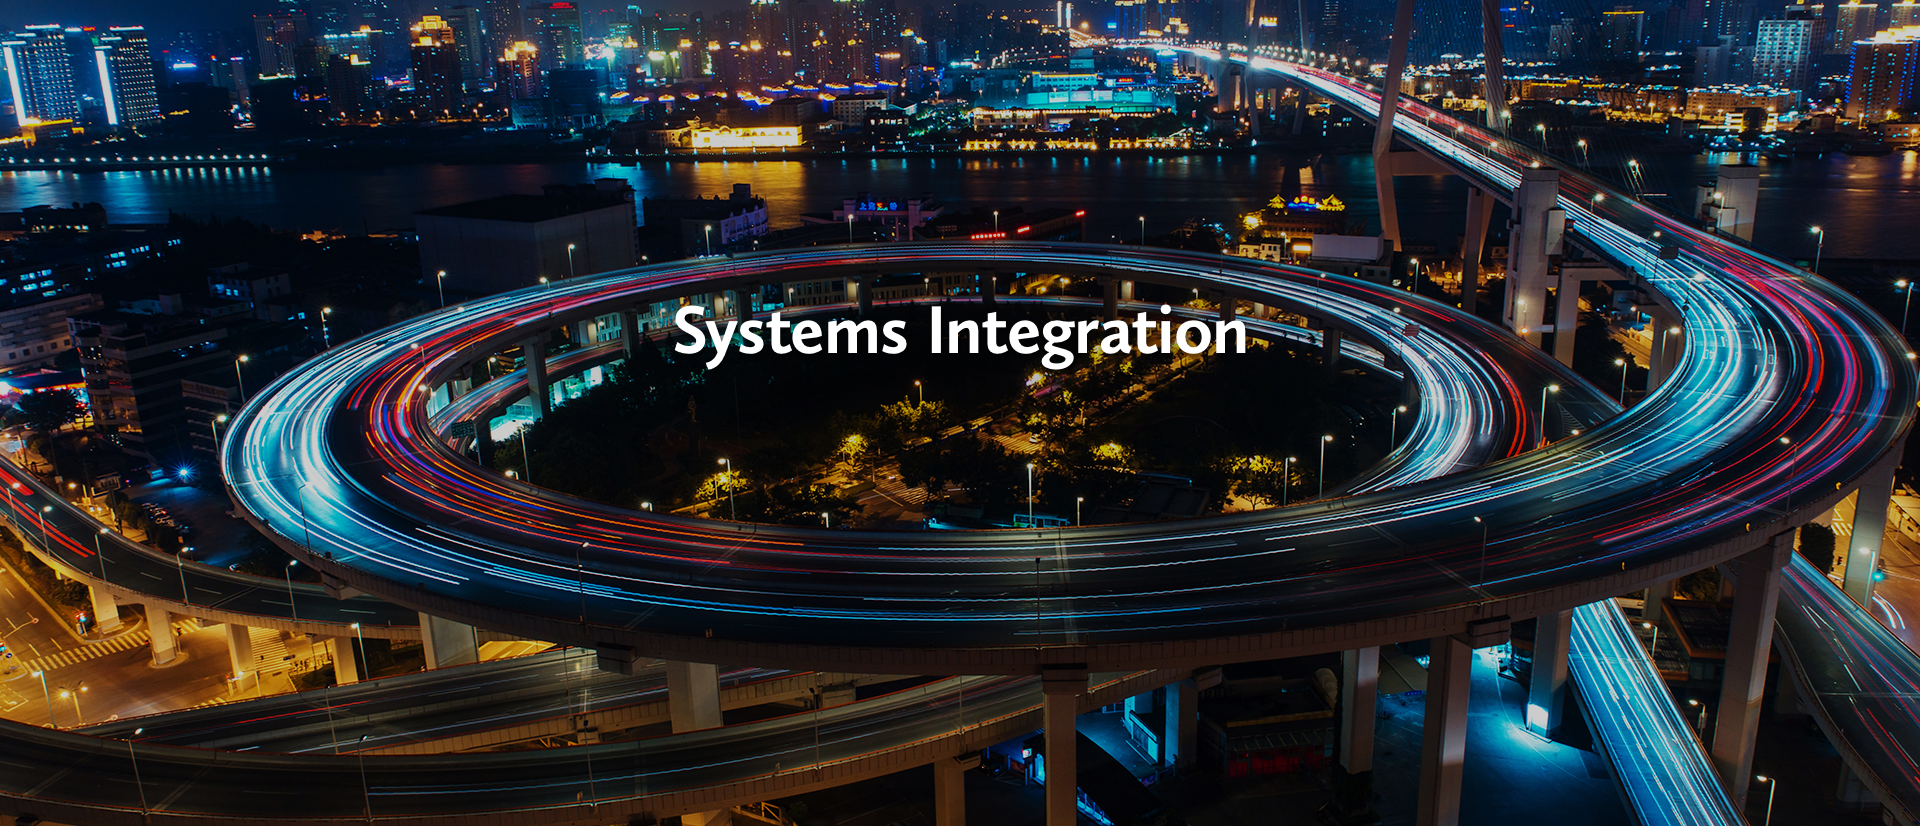 systemsIntegration